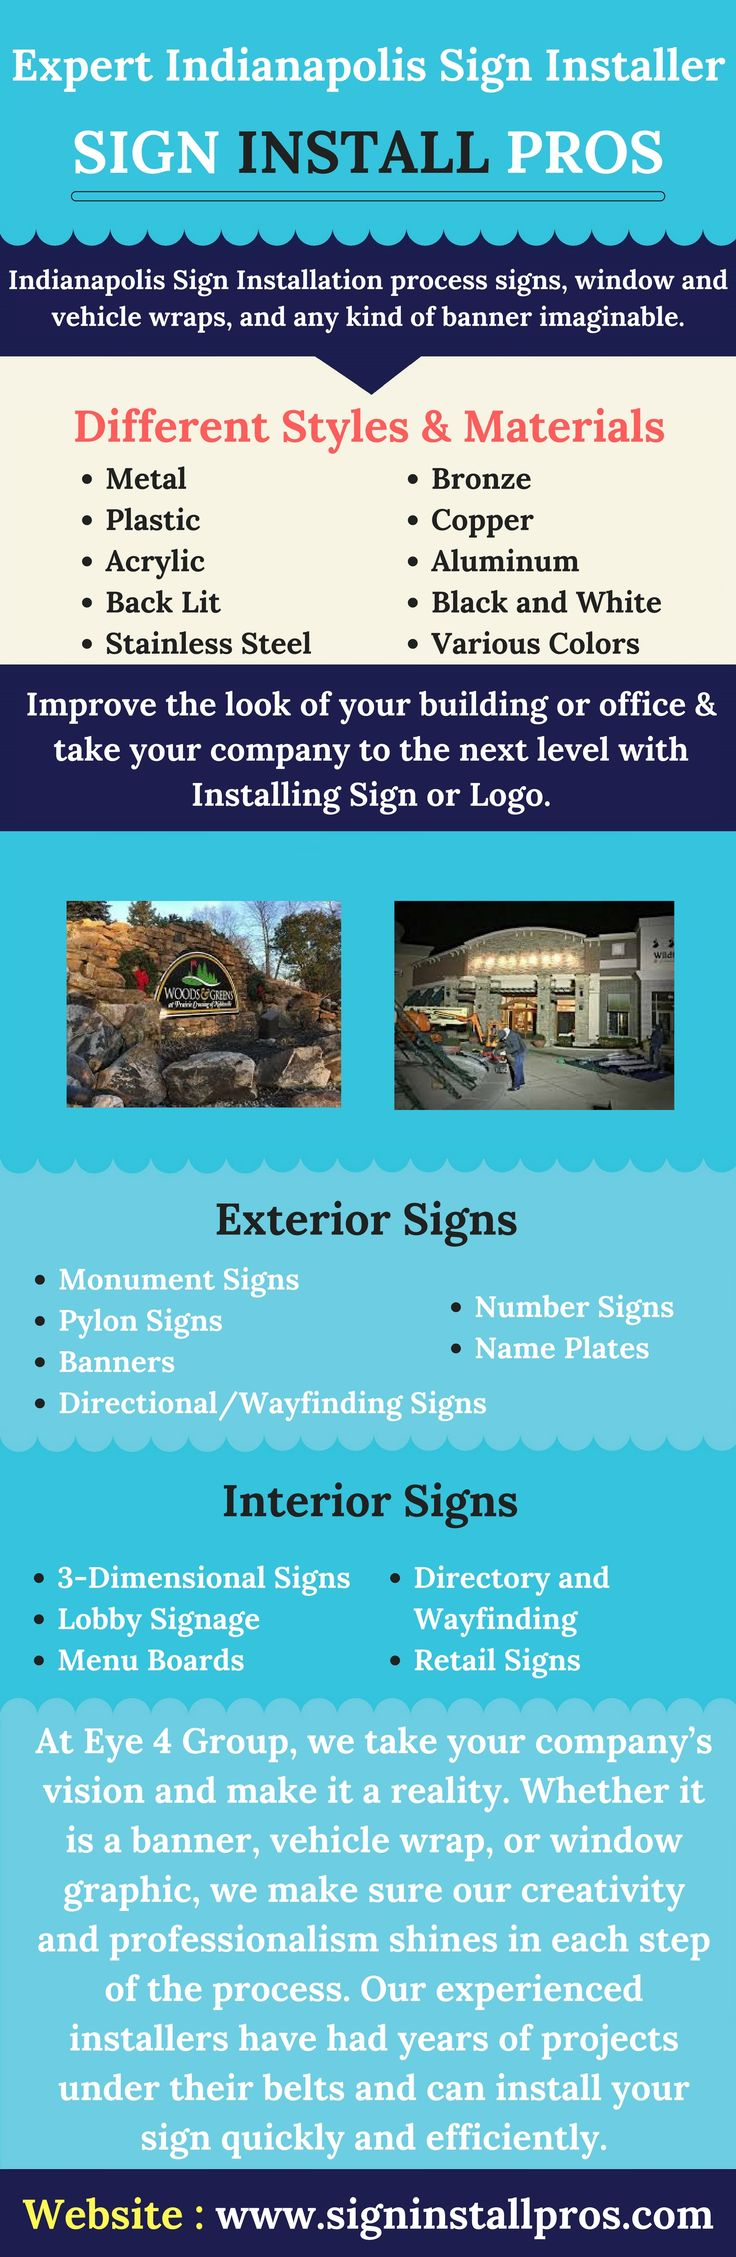 Sign Install Pros offer quality service for all of your Indianapolis Sign Installation and graphic wrap needs. The Company Indianapolis Sign Installation has over 20 years of combined experience in Sign installation. Know more. #SignInstaller #SignInstallPros